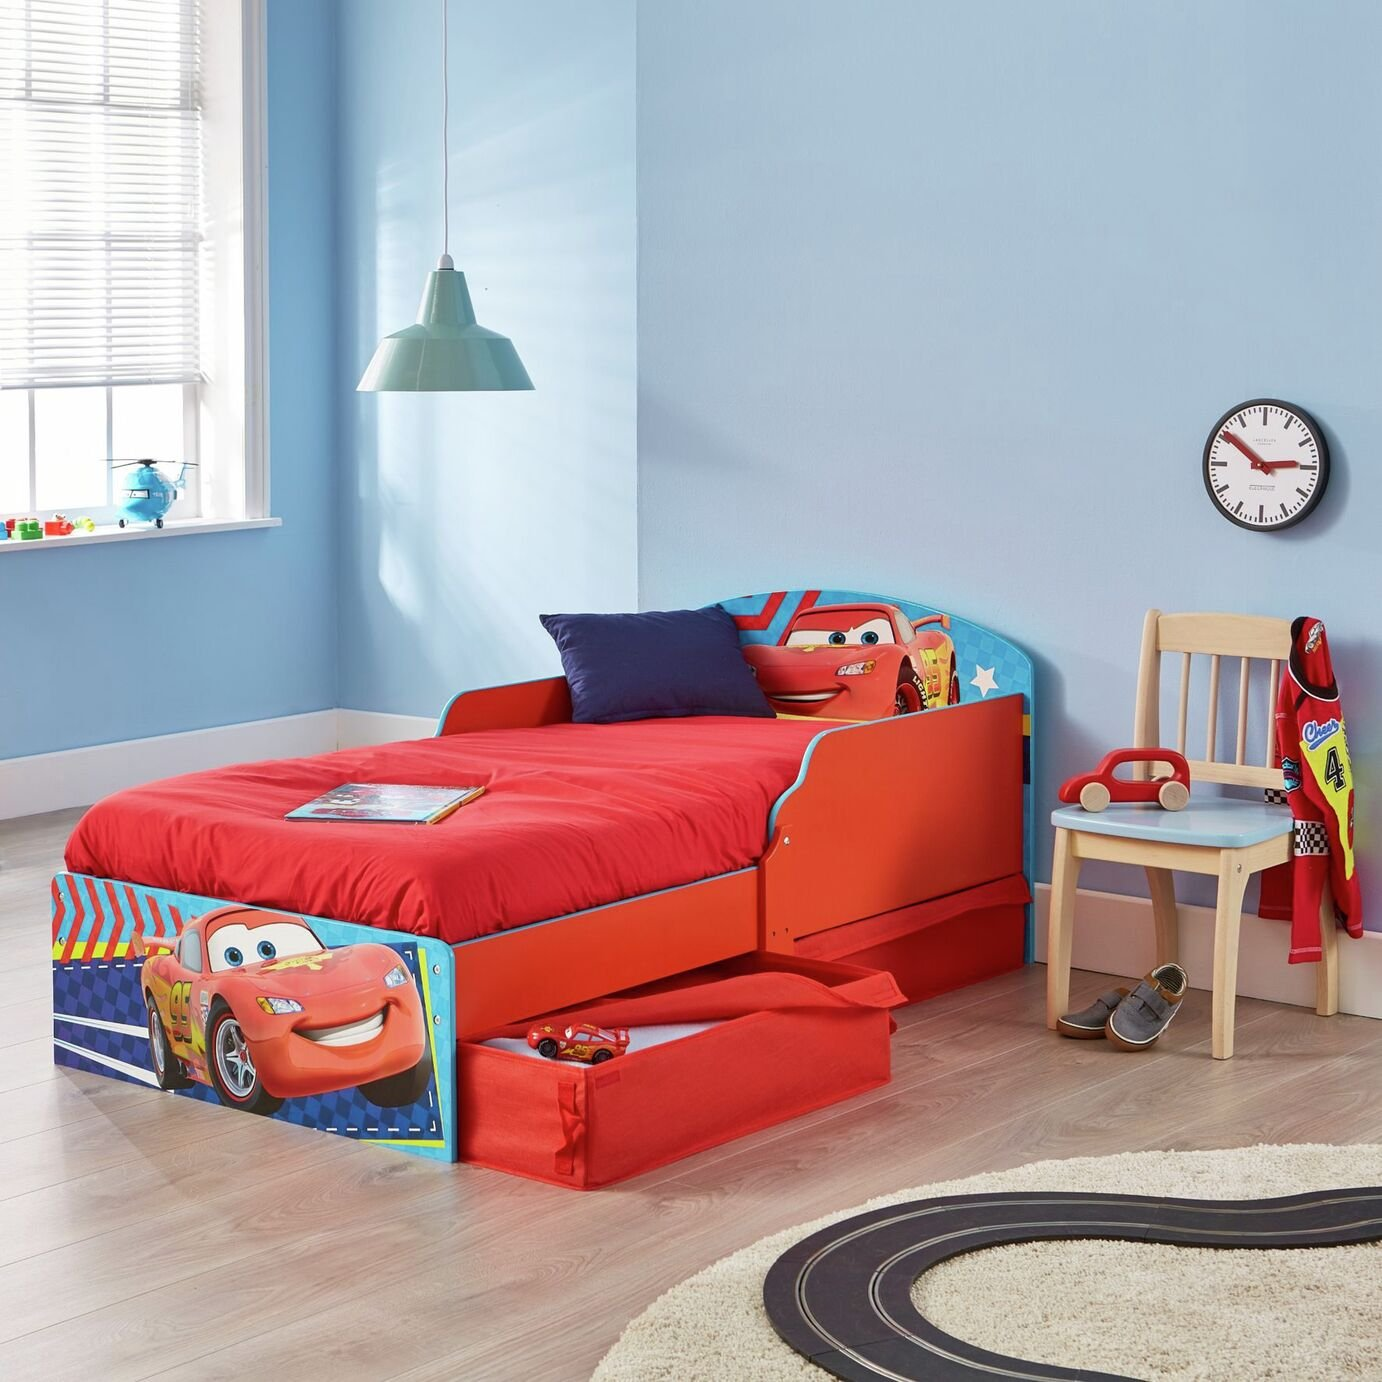 Toddler Bed Offers: Disney: Find Offers Online And Compare Prices At Wunderstore